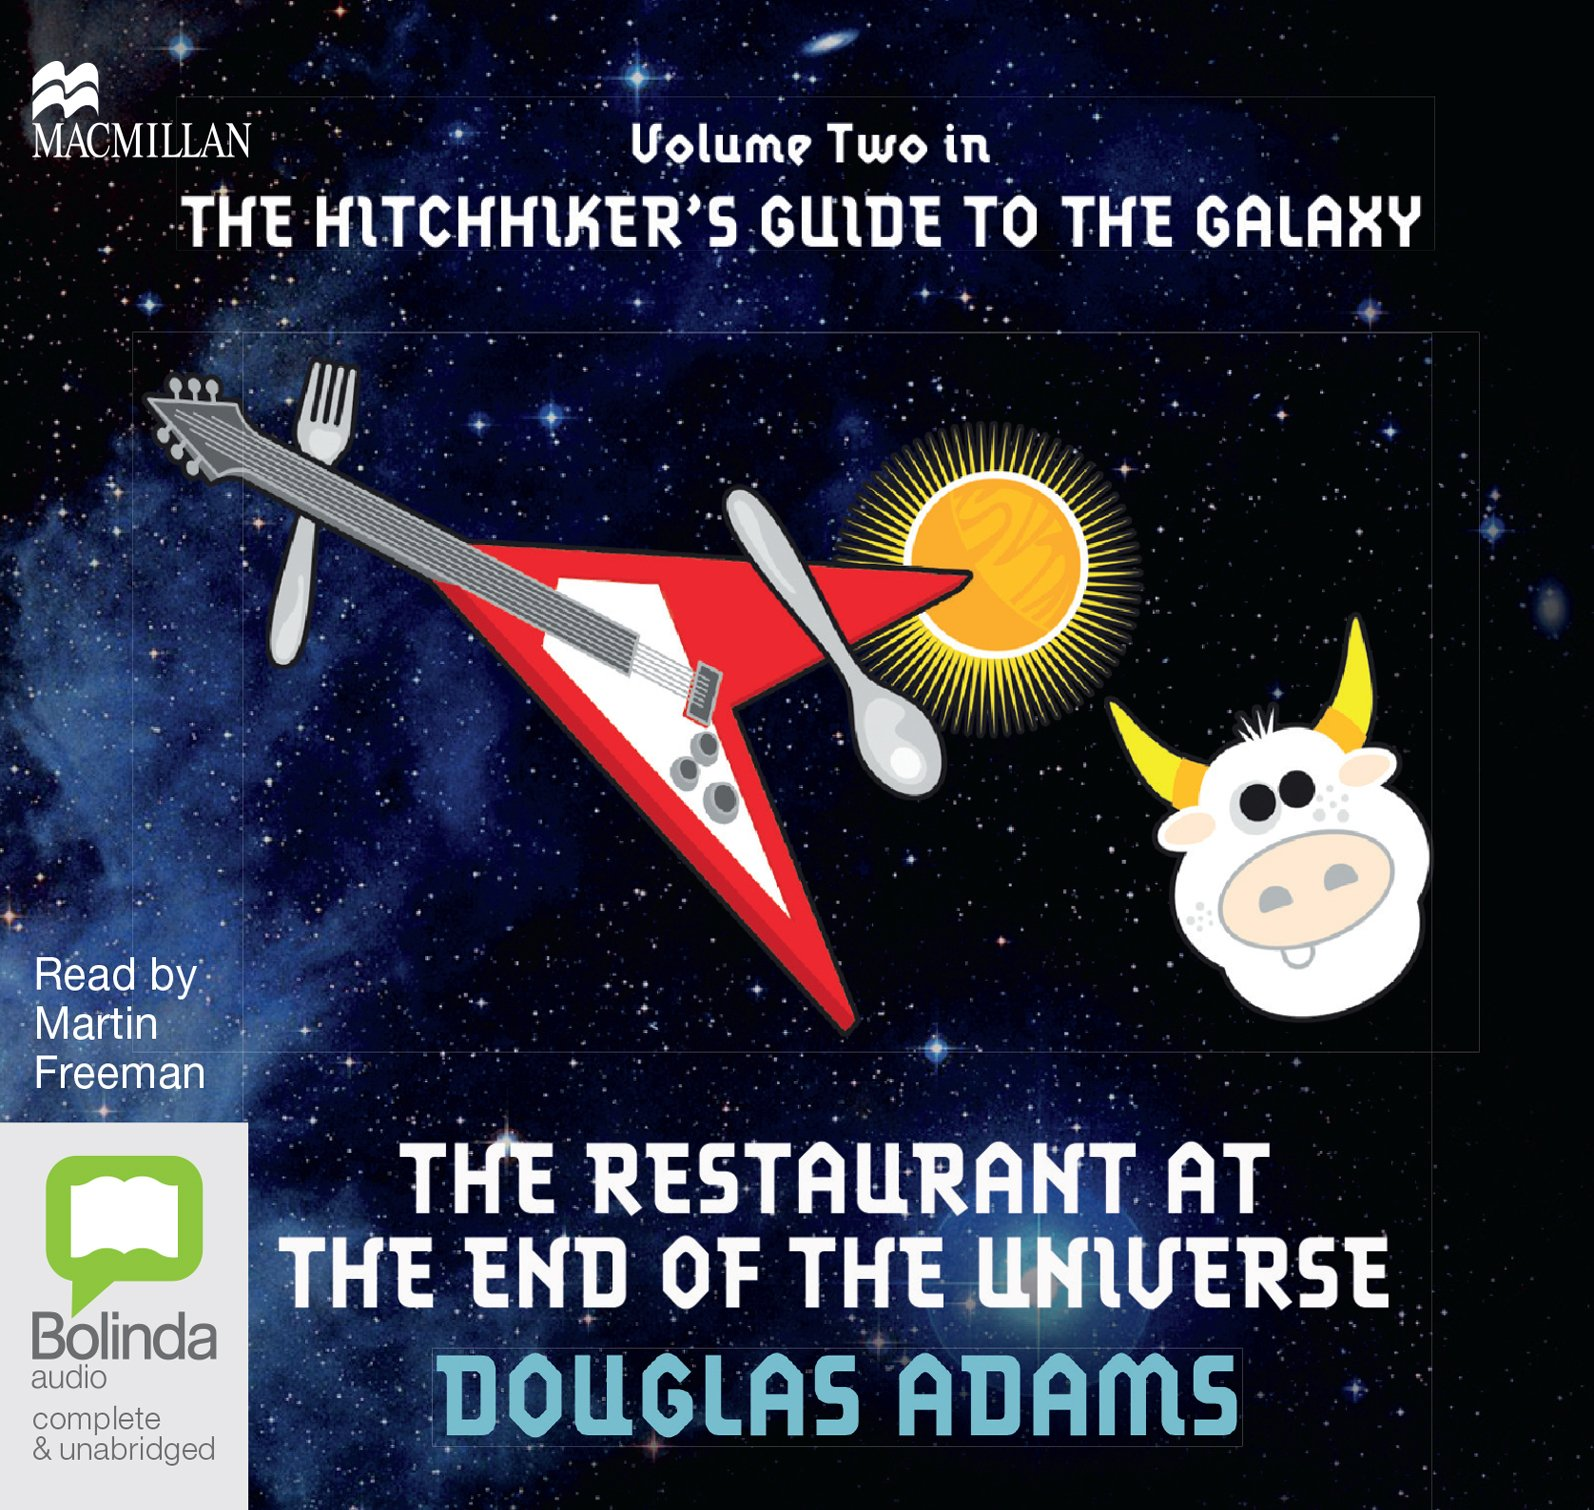 The Restaurant At The End Of The Universe: 9781509802395: Amazon.com: Books